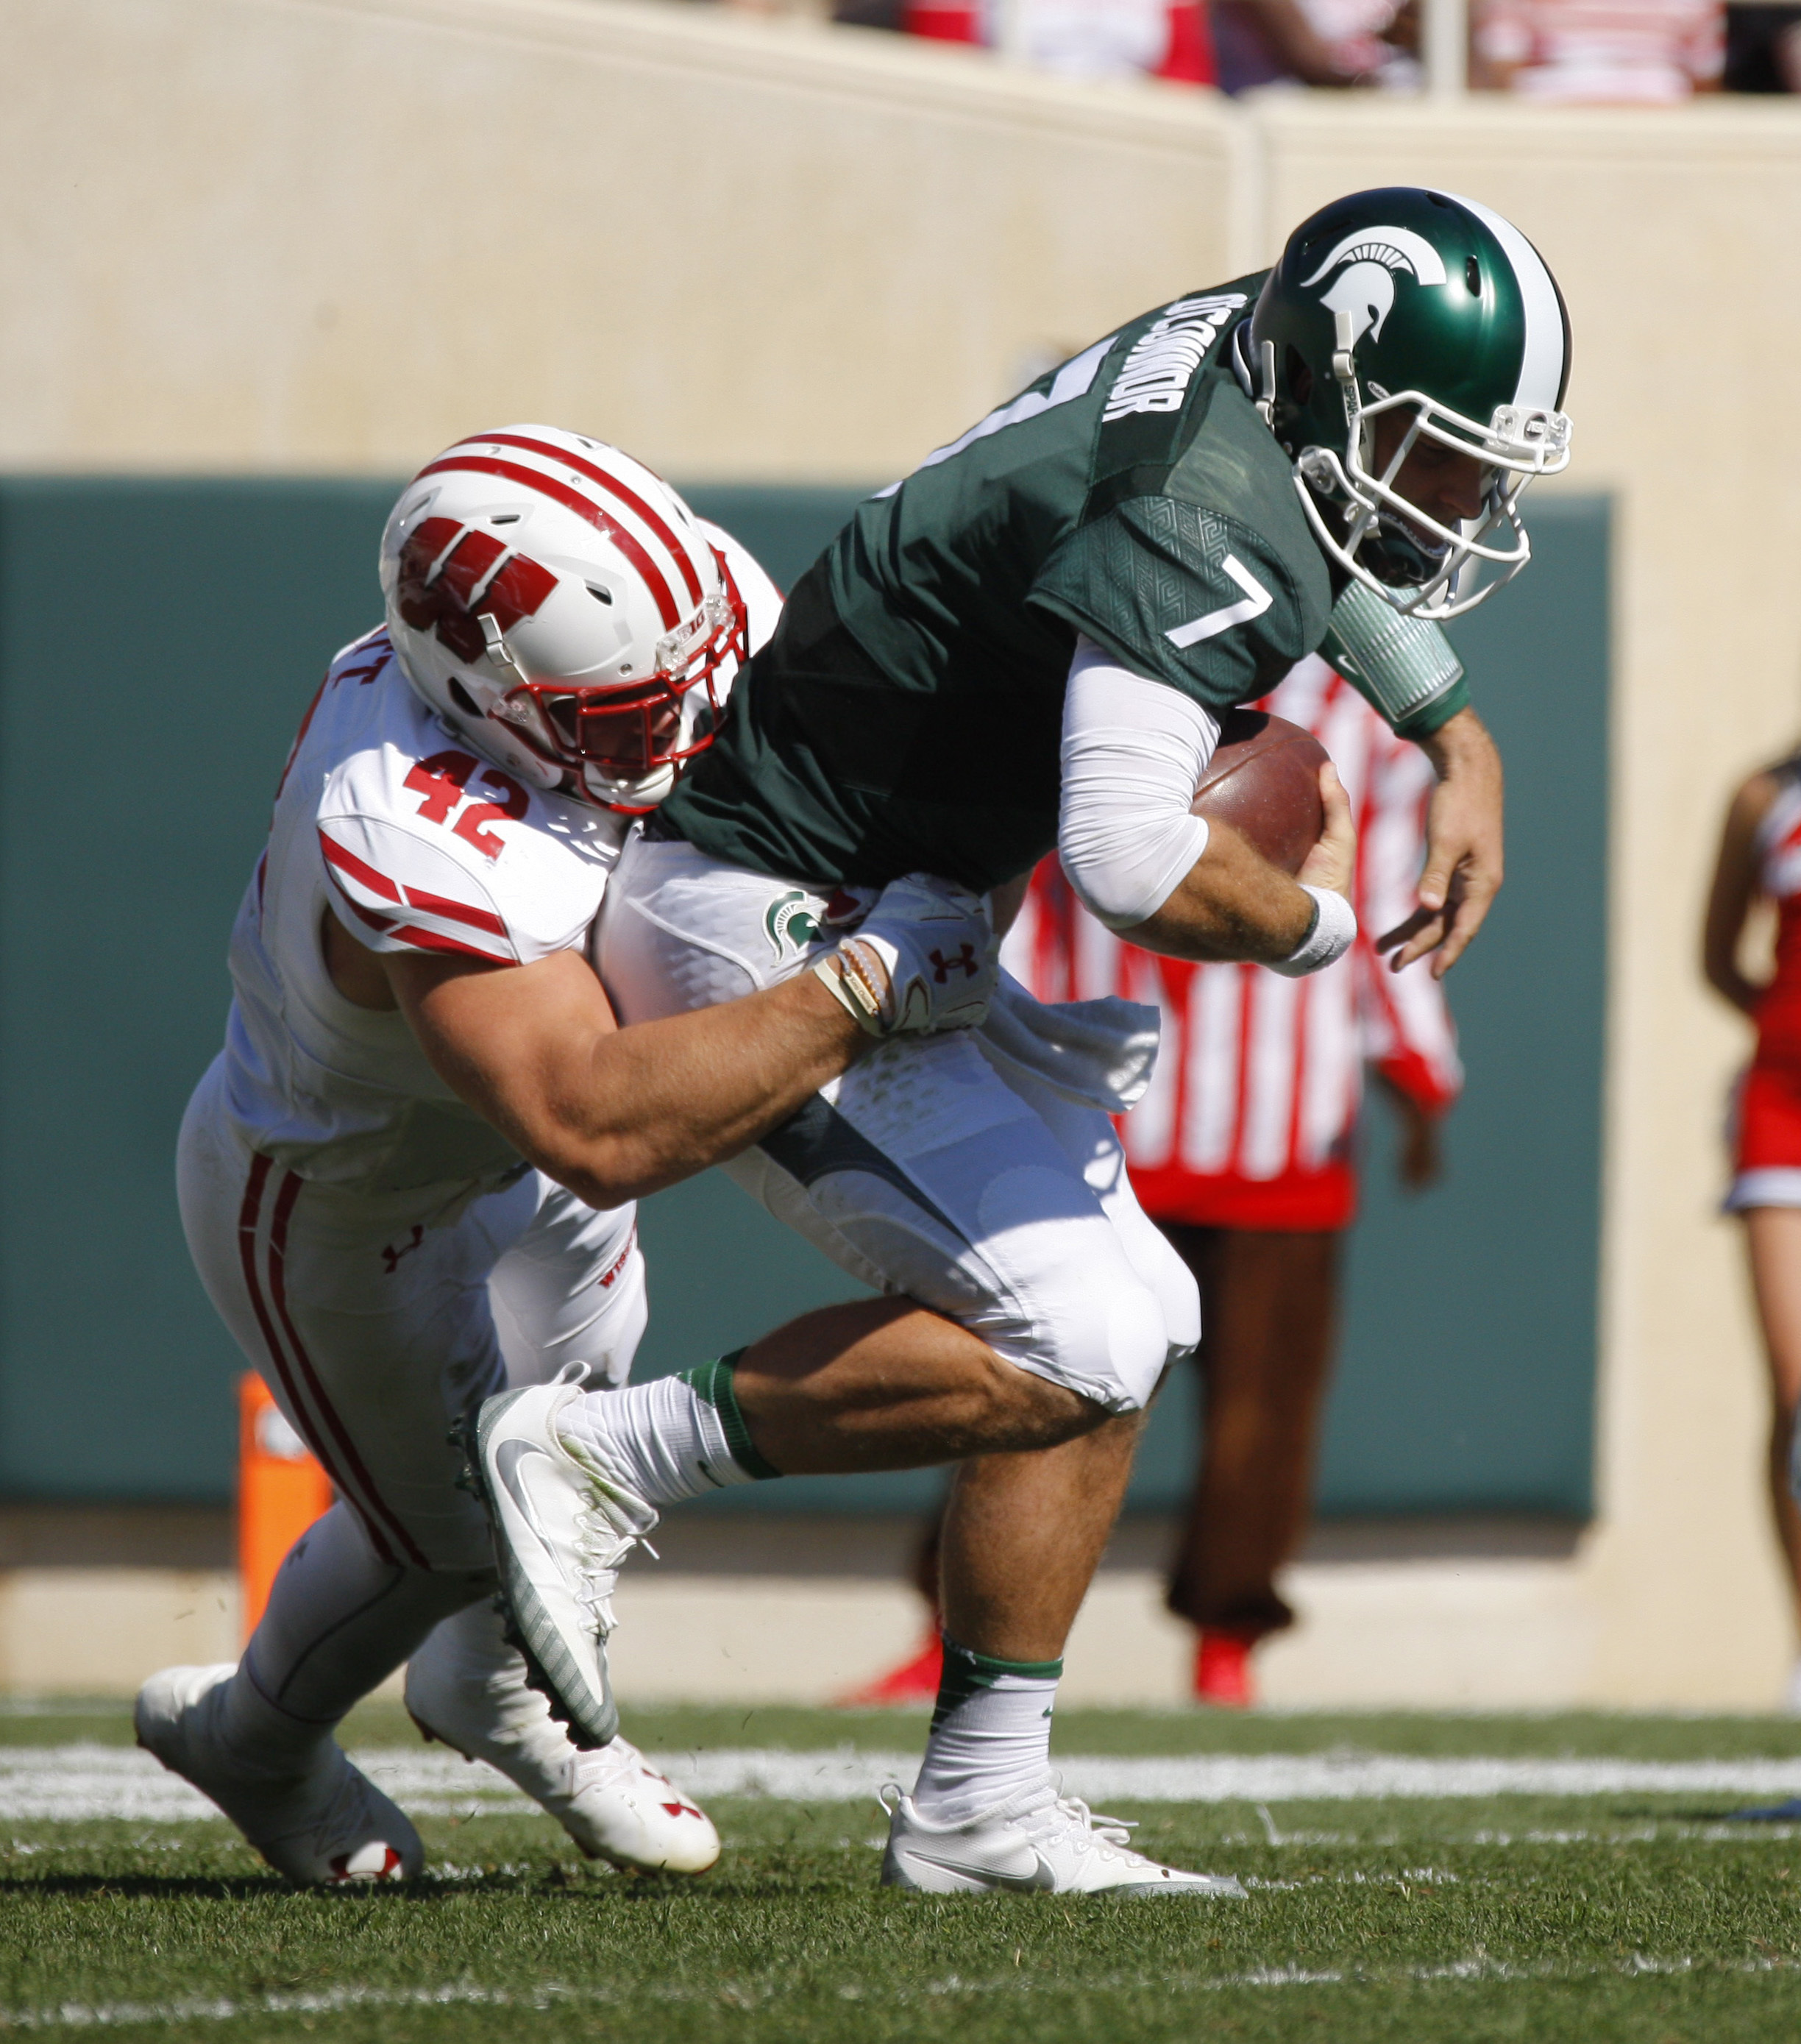 Wisconsin's T.J. Watt, left, sacks Michigan State quarterback Tyler O'Connor (7) during the fourth quarter of an NCAA college football game, Saturday, Sept. 24, 2016, in East Lansing, Mich. Wisconsin won 30-6. (AP Photo/Al Goldis)